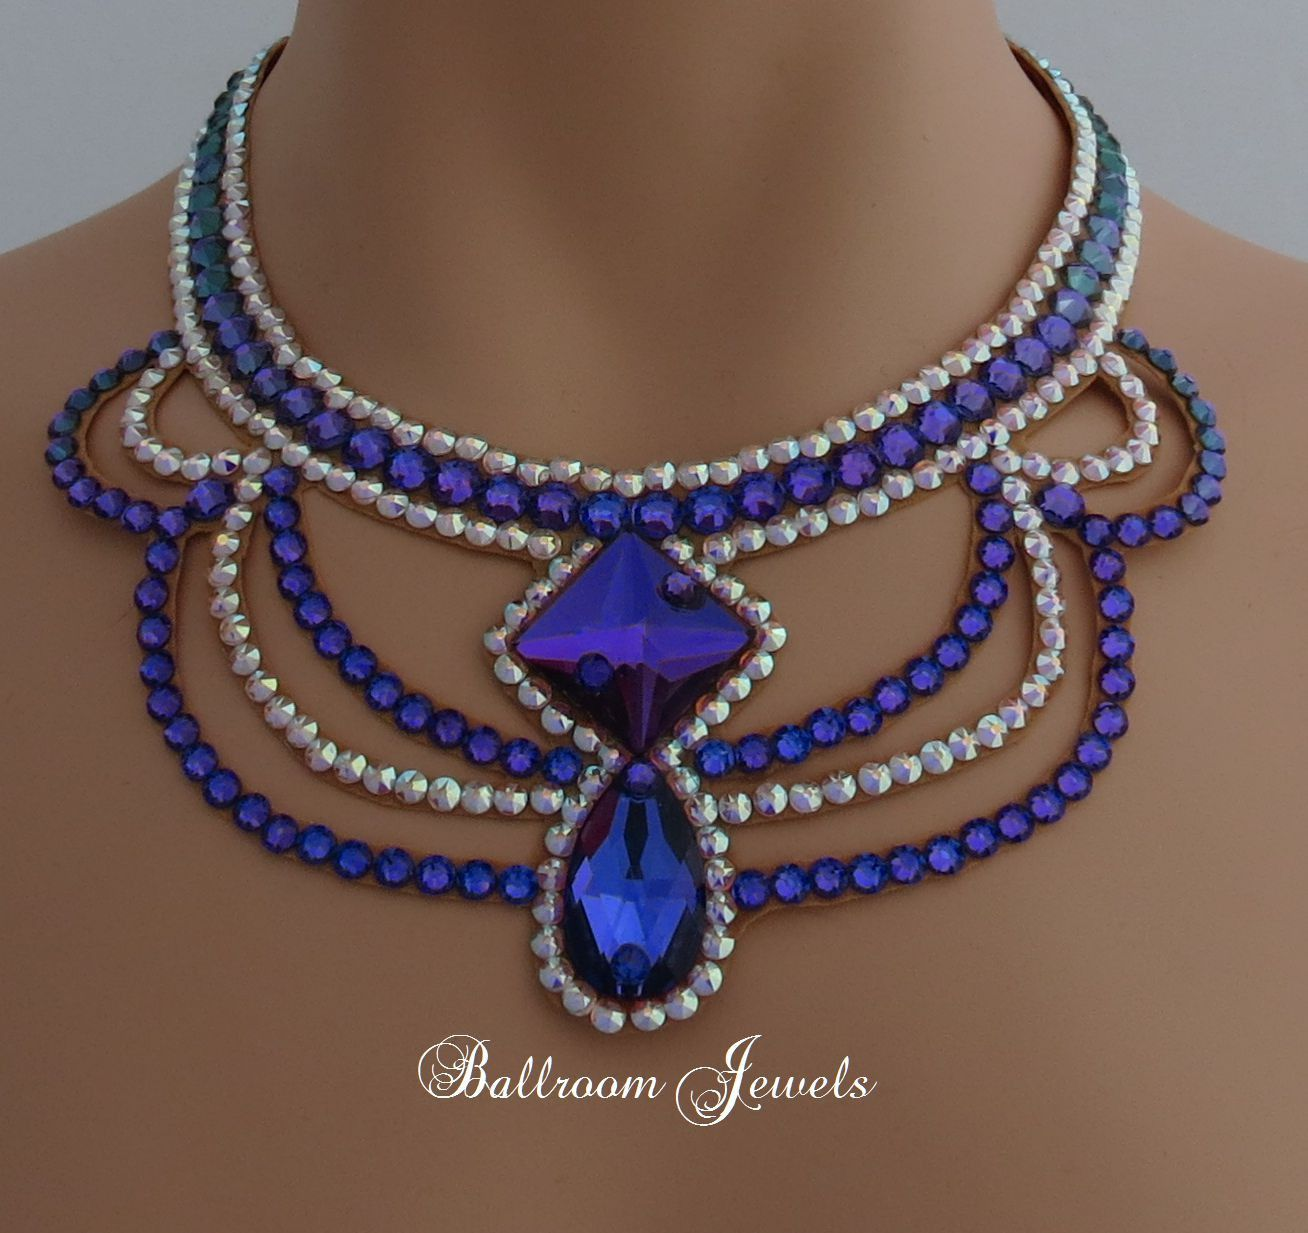 Latin Dance Earrings: Ballroom Square And Pear Heliotrope Purple Necklace